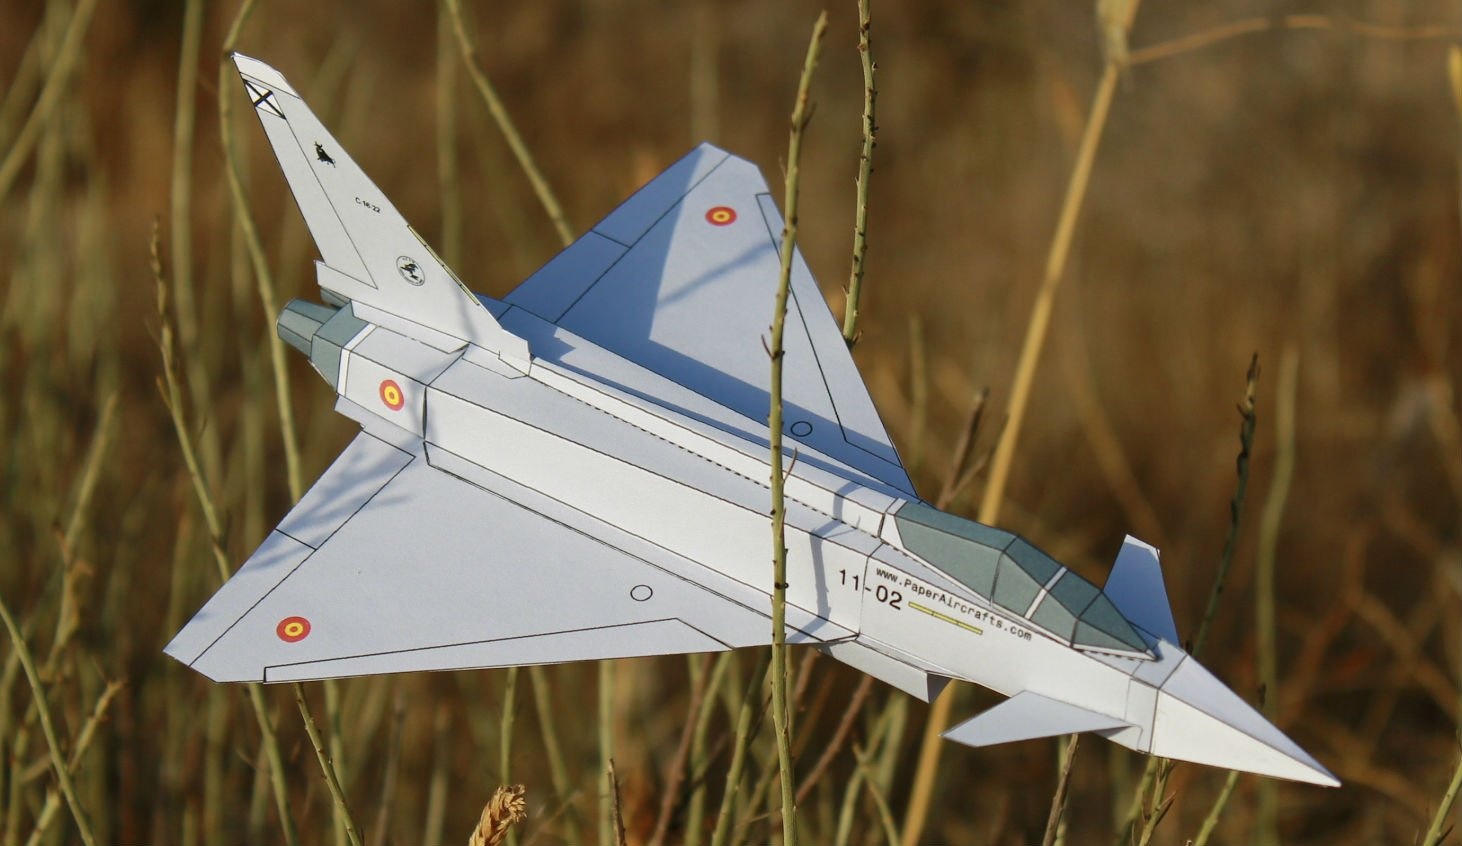 Eurofighter-CL